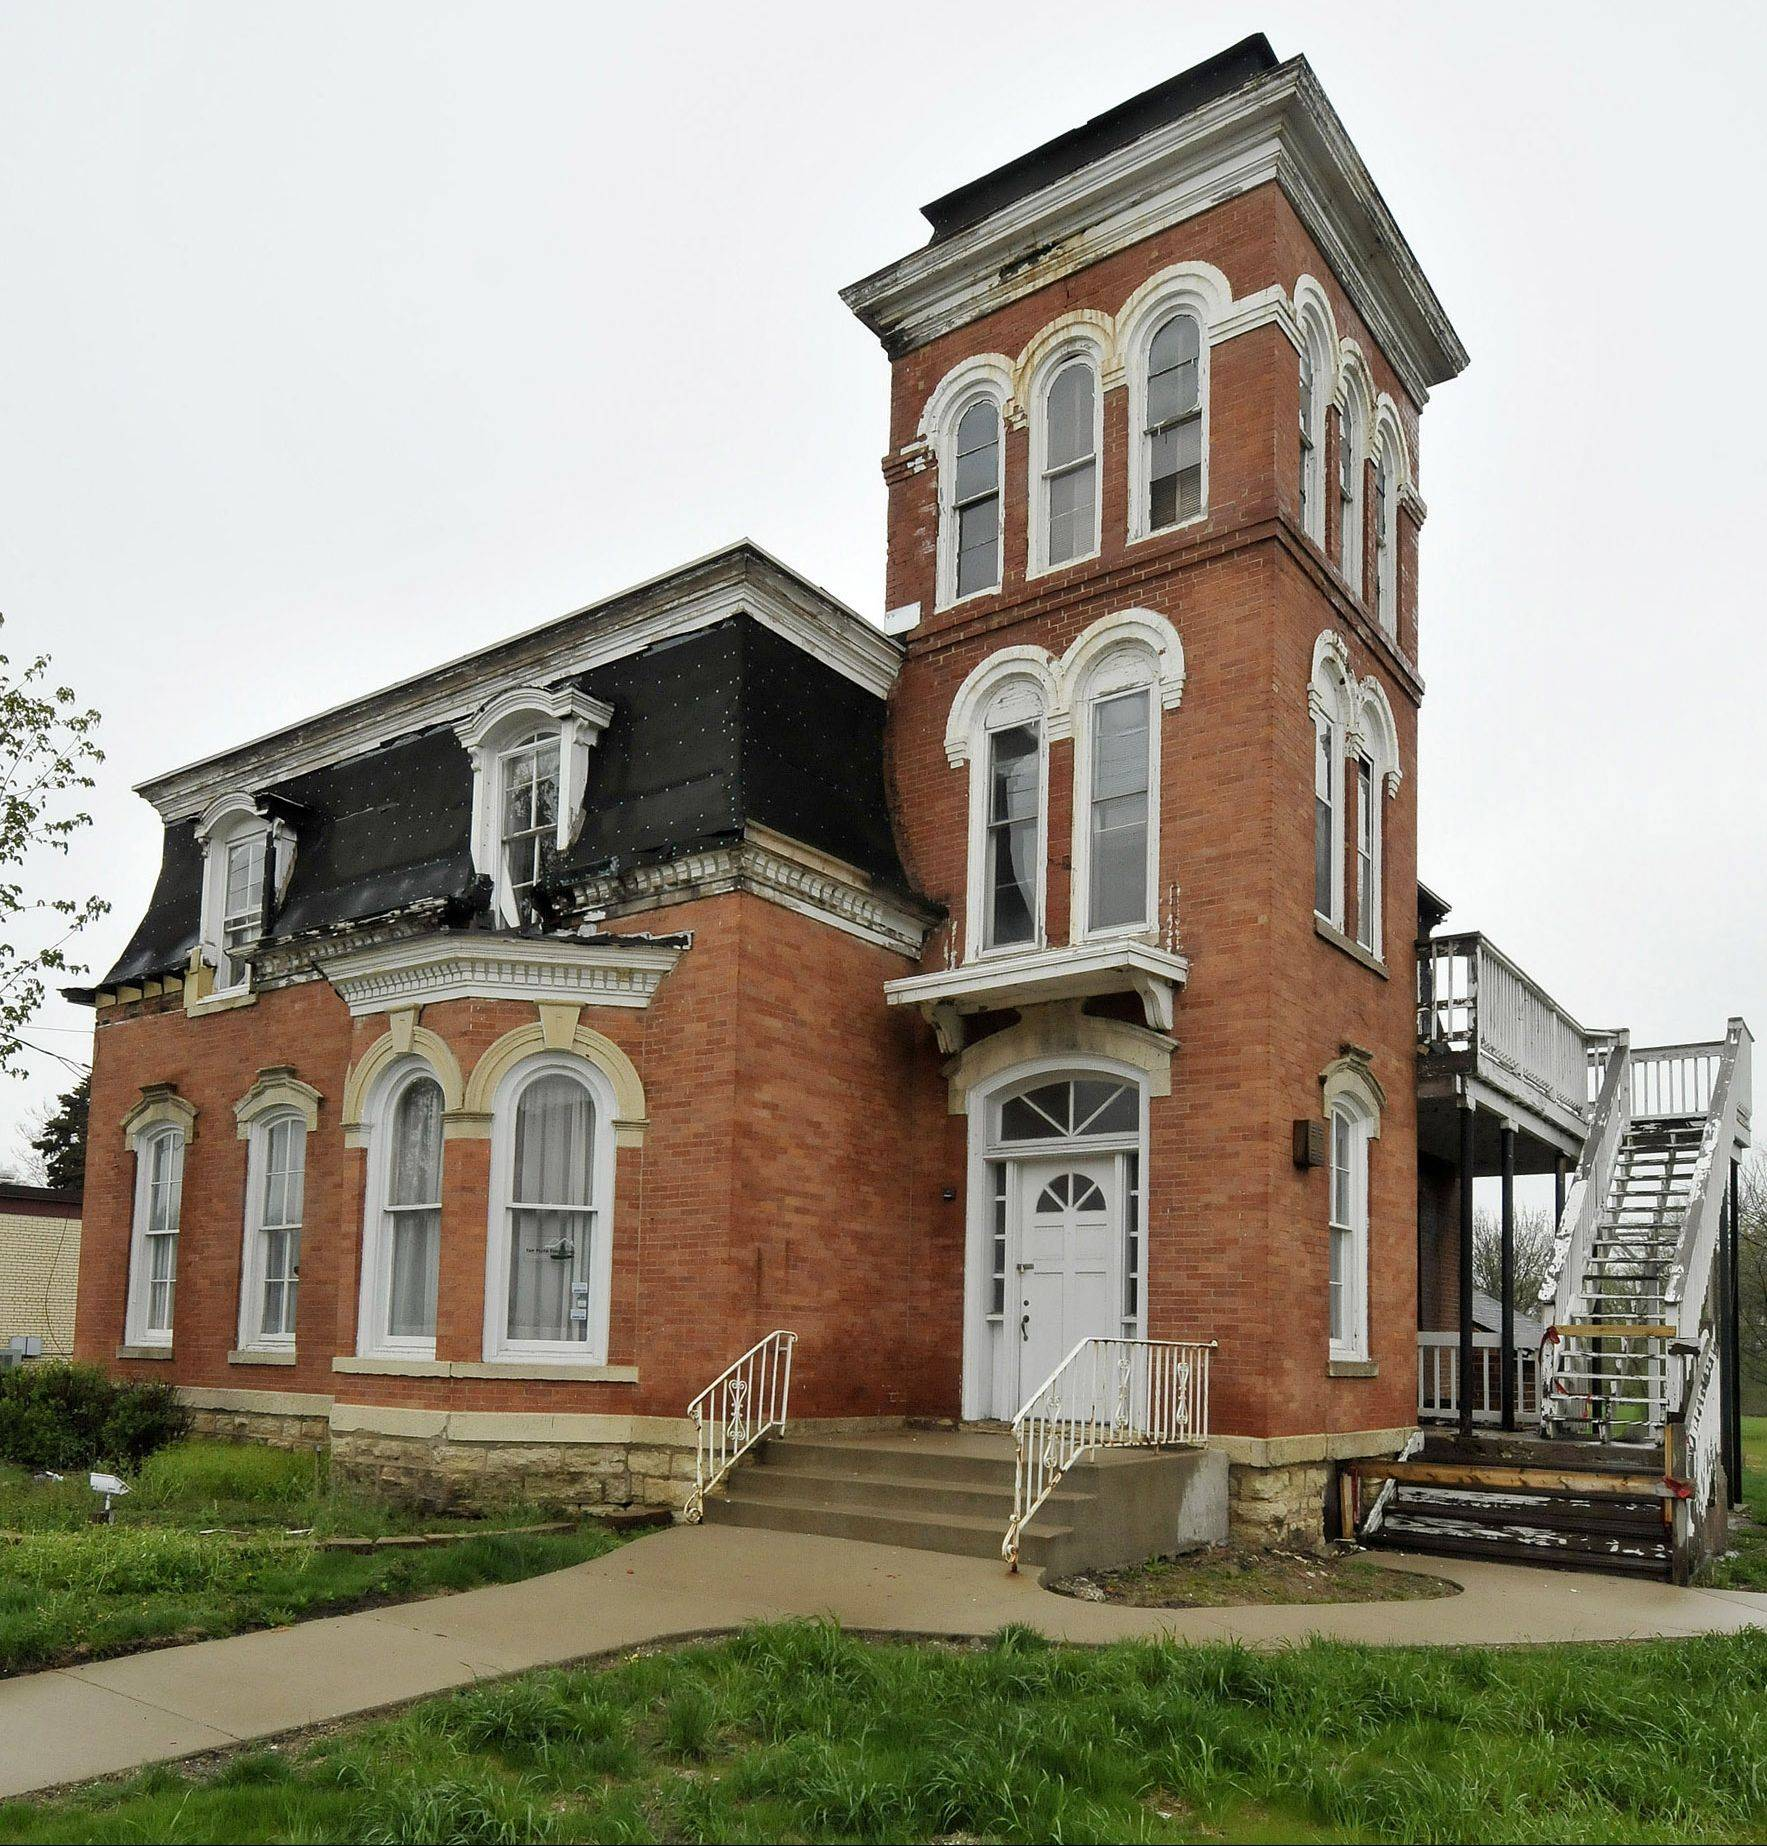 The West Chicago Community Center is planning to spend about $300,000 of its own money to repair the Joel Wiant House in downtown West Chicago. If the group can resolve a list of exterior building code violations by April 30, the city will sell 144-year-old building to the organization for a dollar.